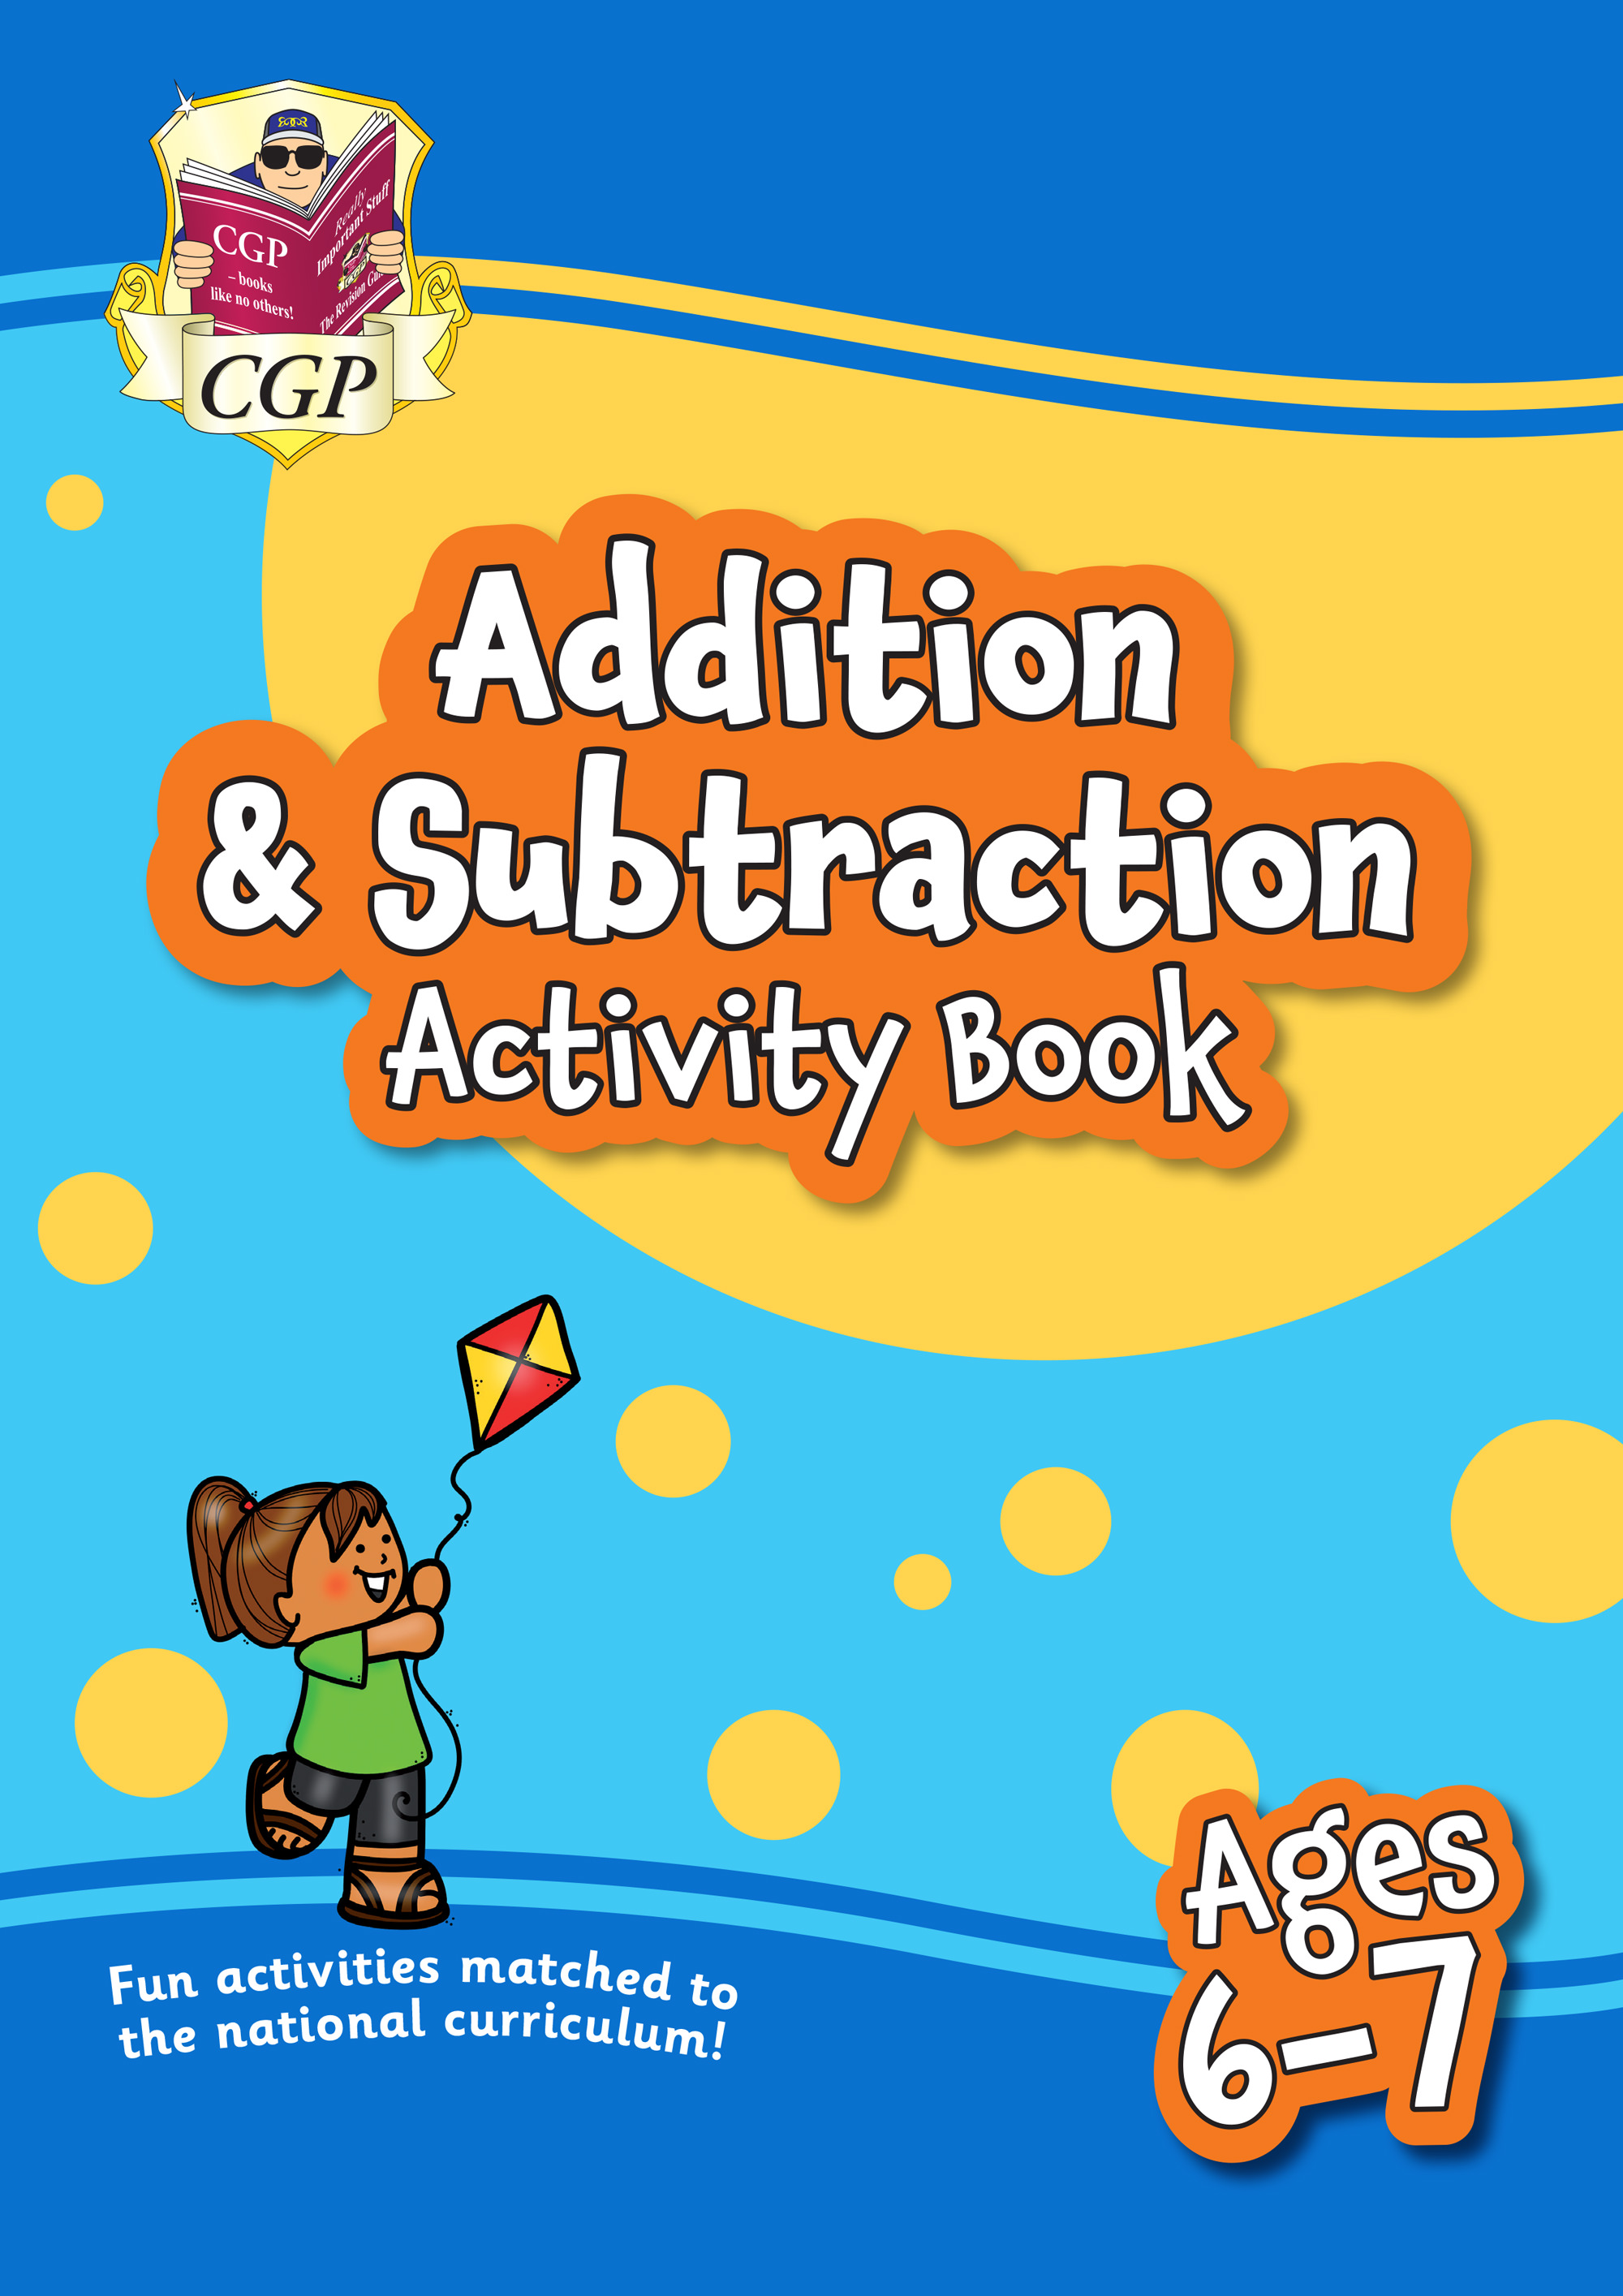 MPFAS2Q11 - New Addition & Subtraction Home Learning Activity Book for Ages 6-7